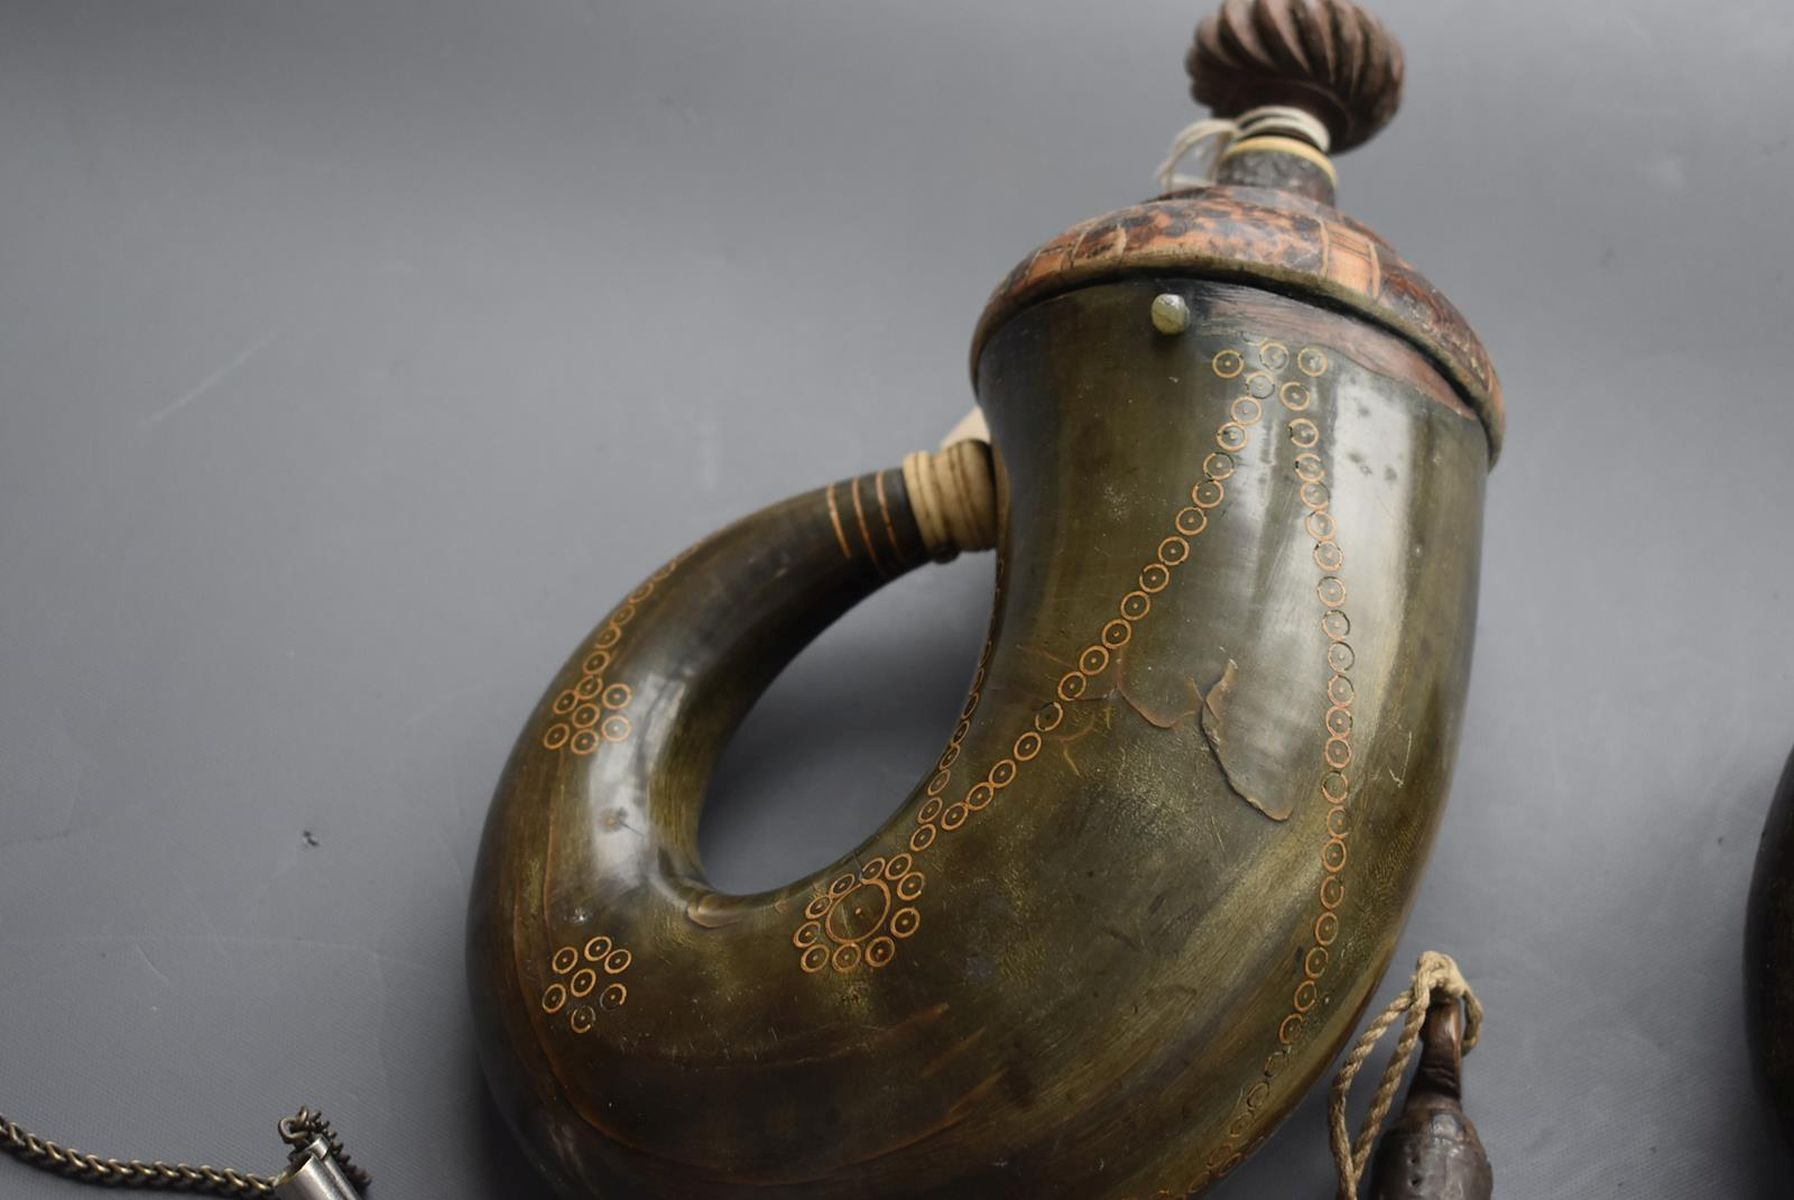 A 19TH CENTURY OTTOMAN POWDER HORN, of characteristic curling form, together with another similar - Image 6 of 8